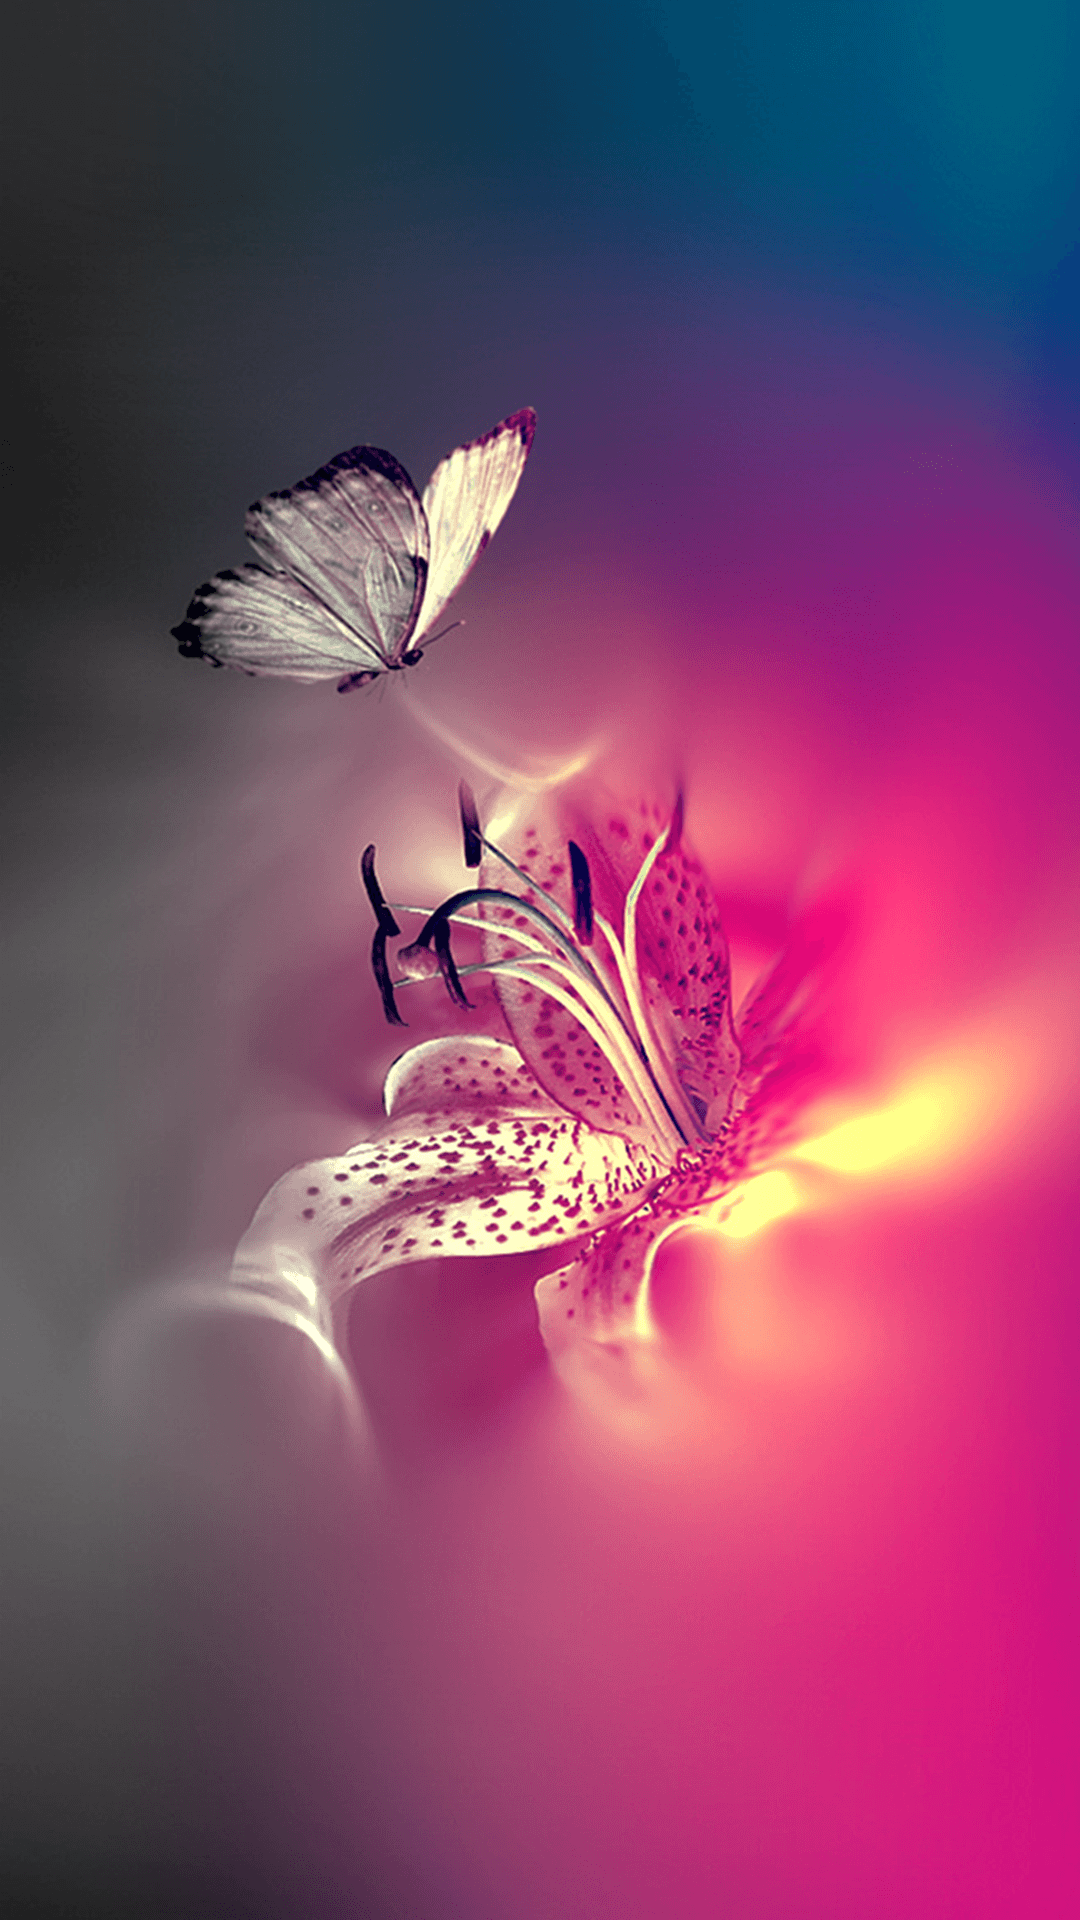 Midnight Purple Butterfly Wallpapers Top Free Midnight Purple Butterfly Backgrounds Wallpaperaccess